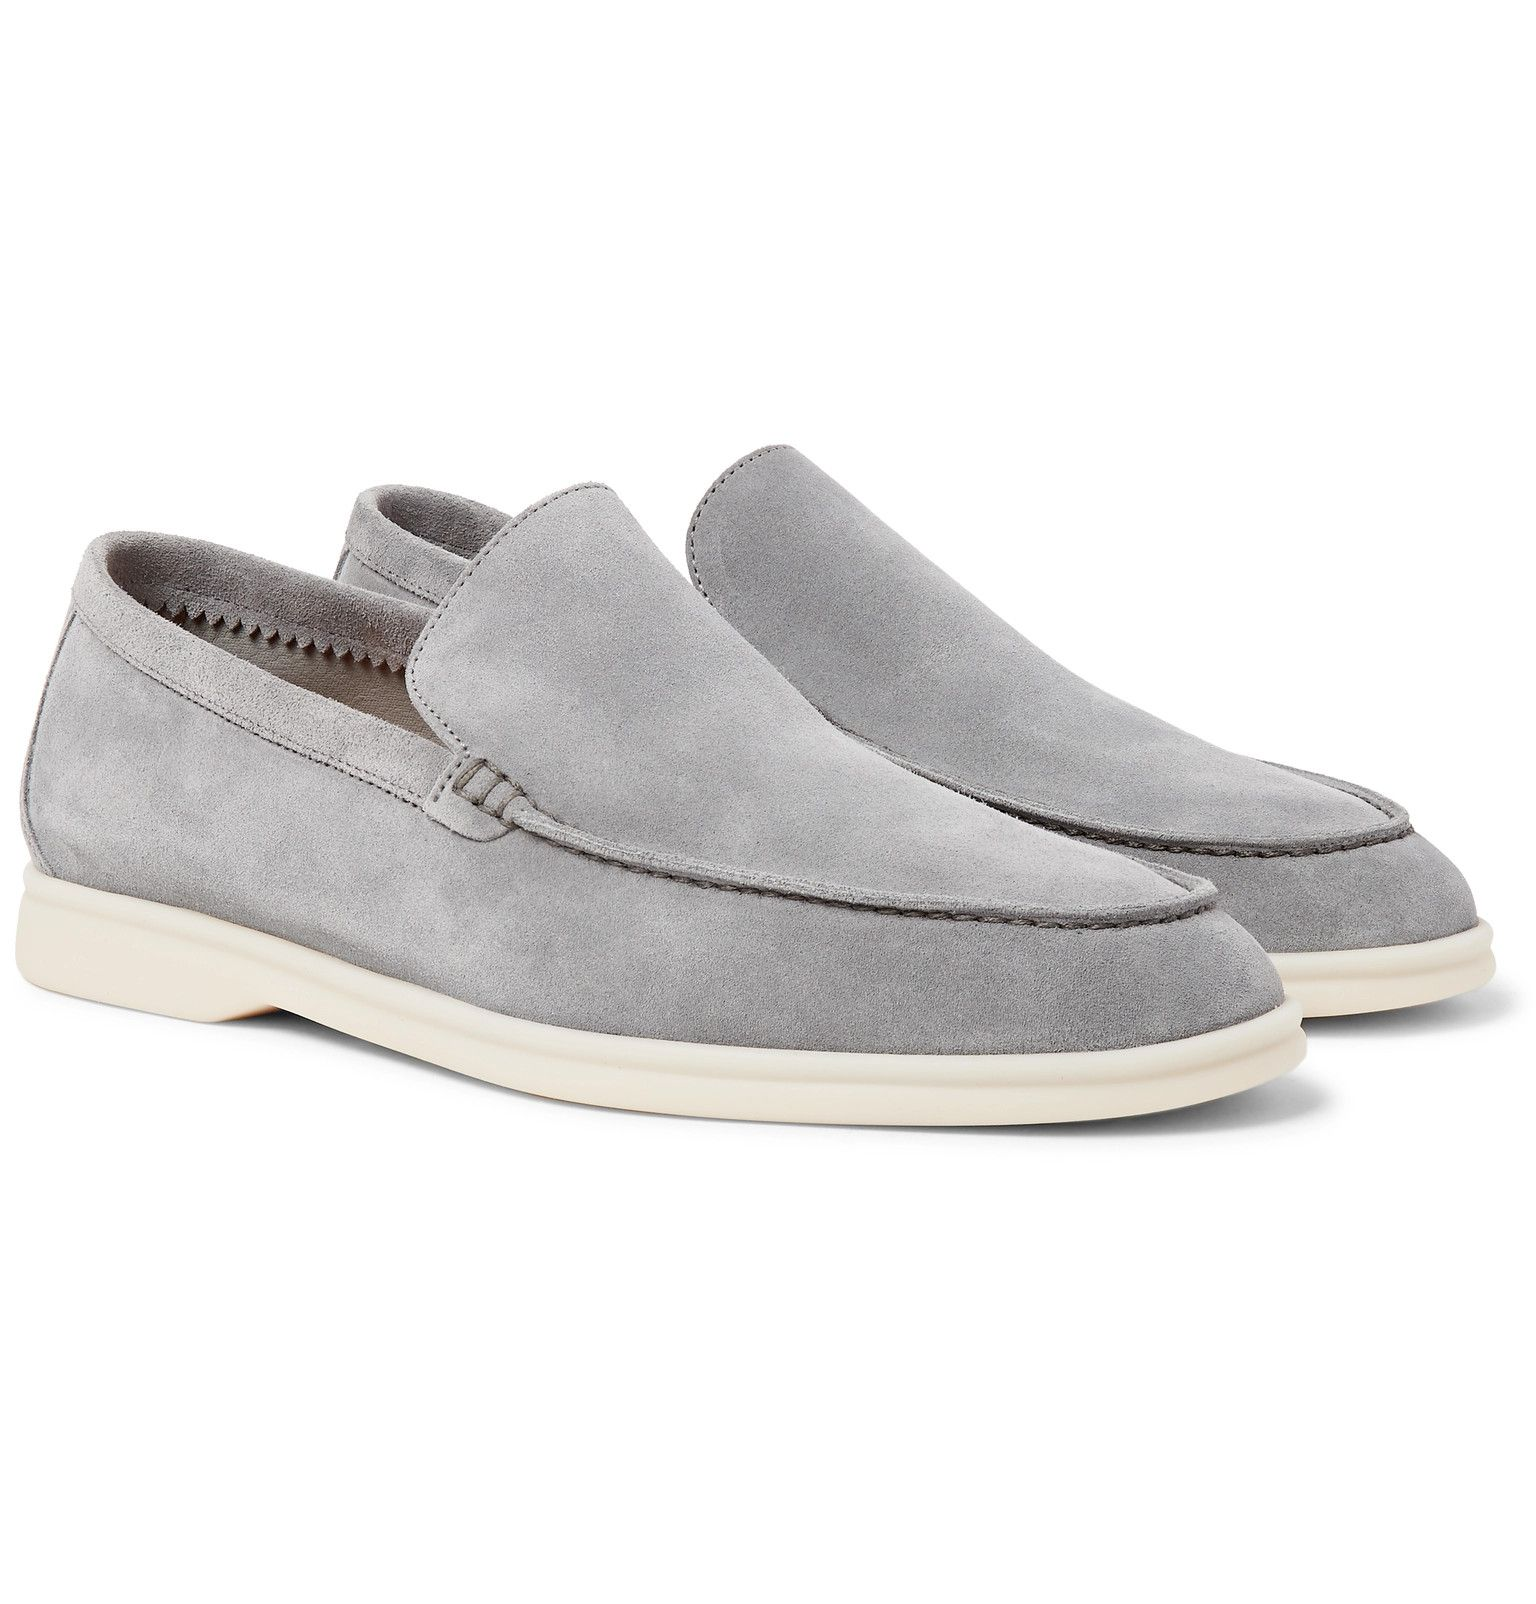 Light gray Summer Walk Suede Loafers